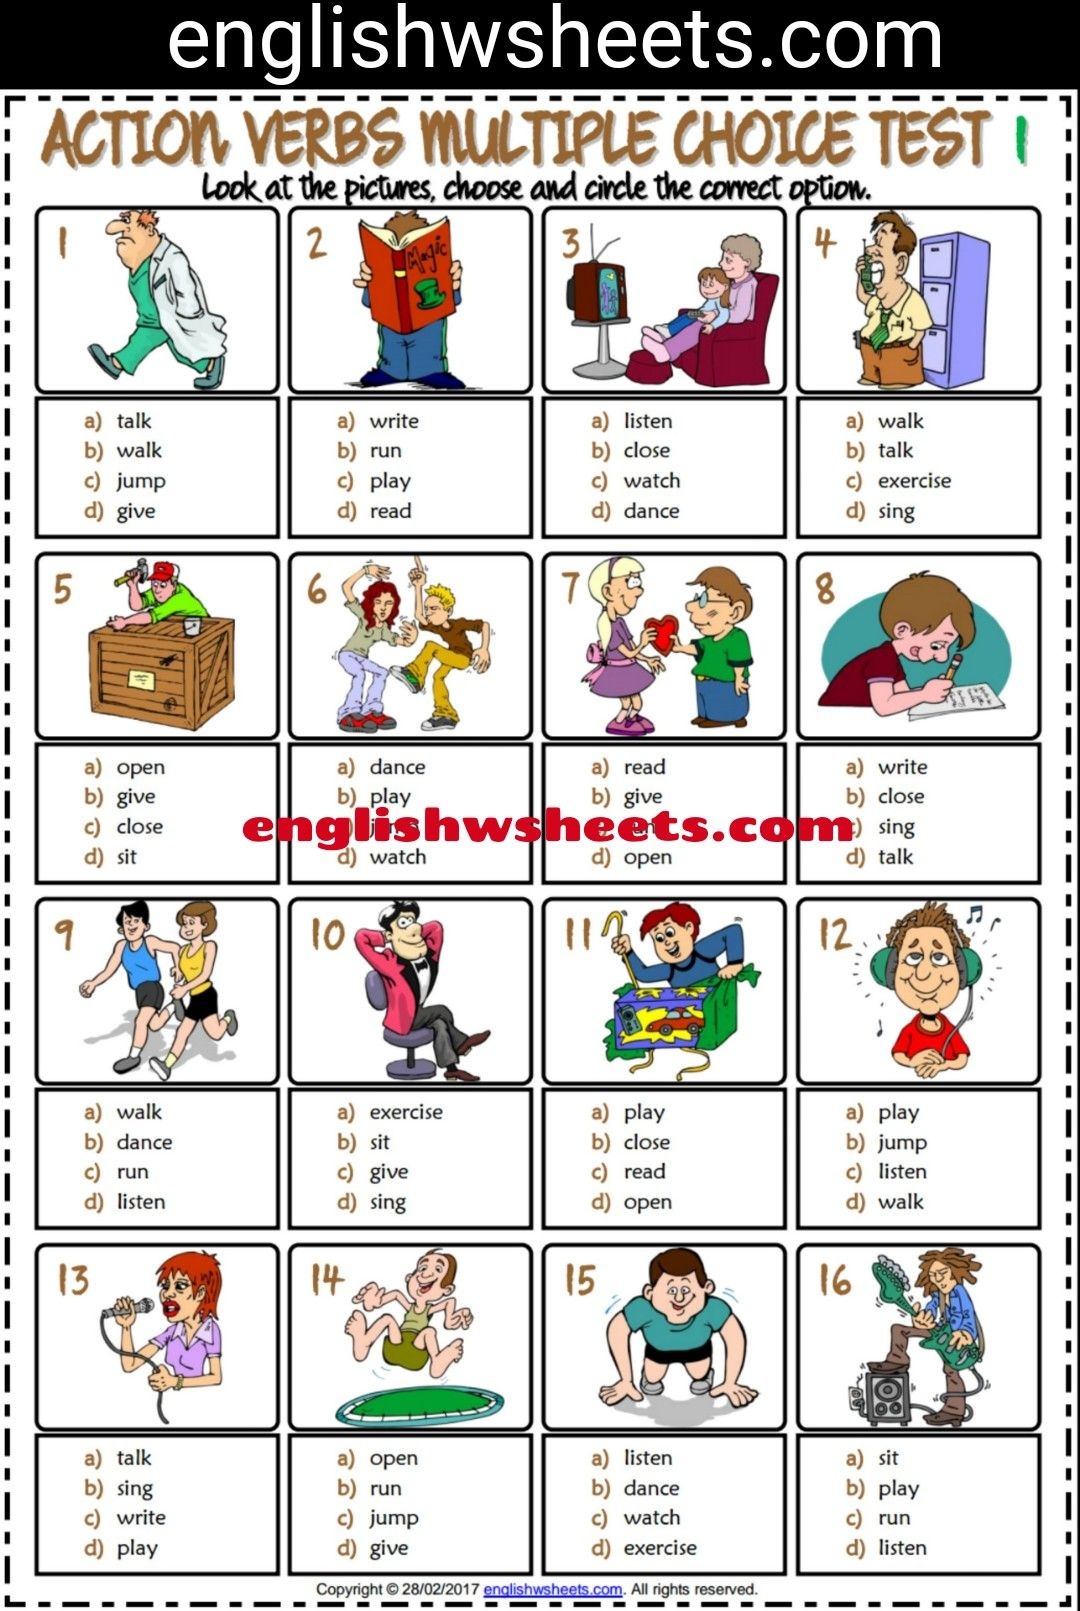 Action Verbs Esl Printable Multiple Choice Tests For Kids #action ...